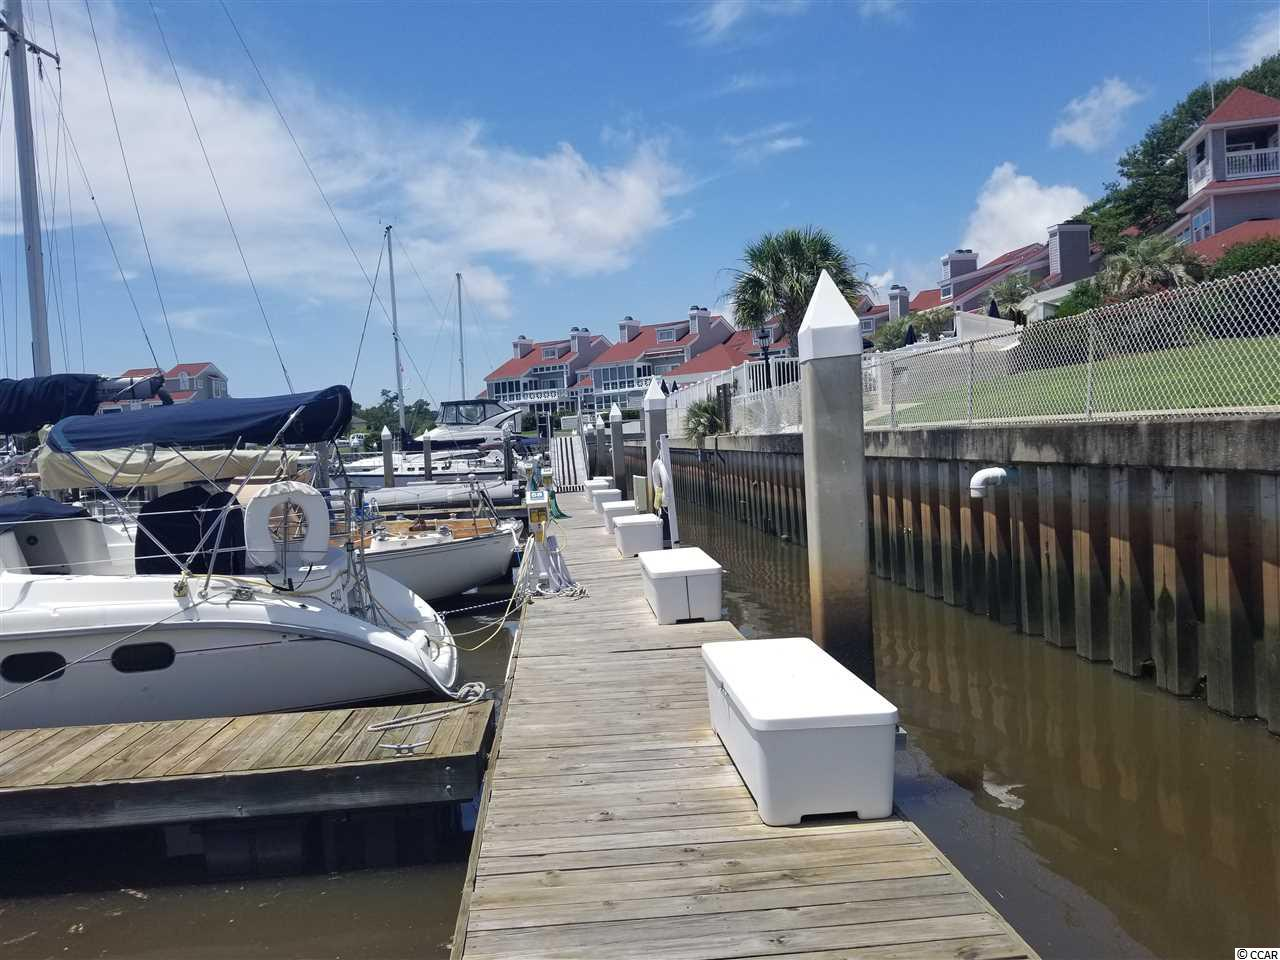 Closest 40' slip to the Little River Inlet!  Floating docks with water and electricity at the slip!  Great amenities include clubhouse, year round pool and spa, showers, etc.  Slip location is just off the pool and clubhouse!  Has Dock locker and convenient parking.  3 bedroom townhouse/condo with ICW views also available!